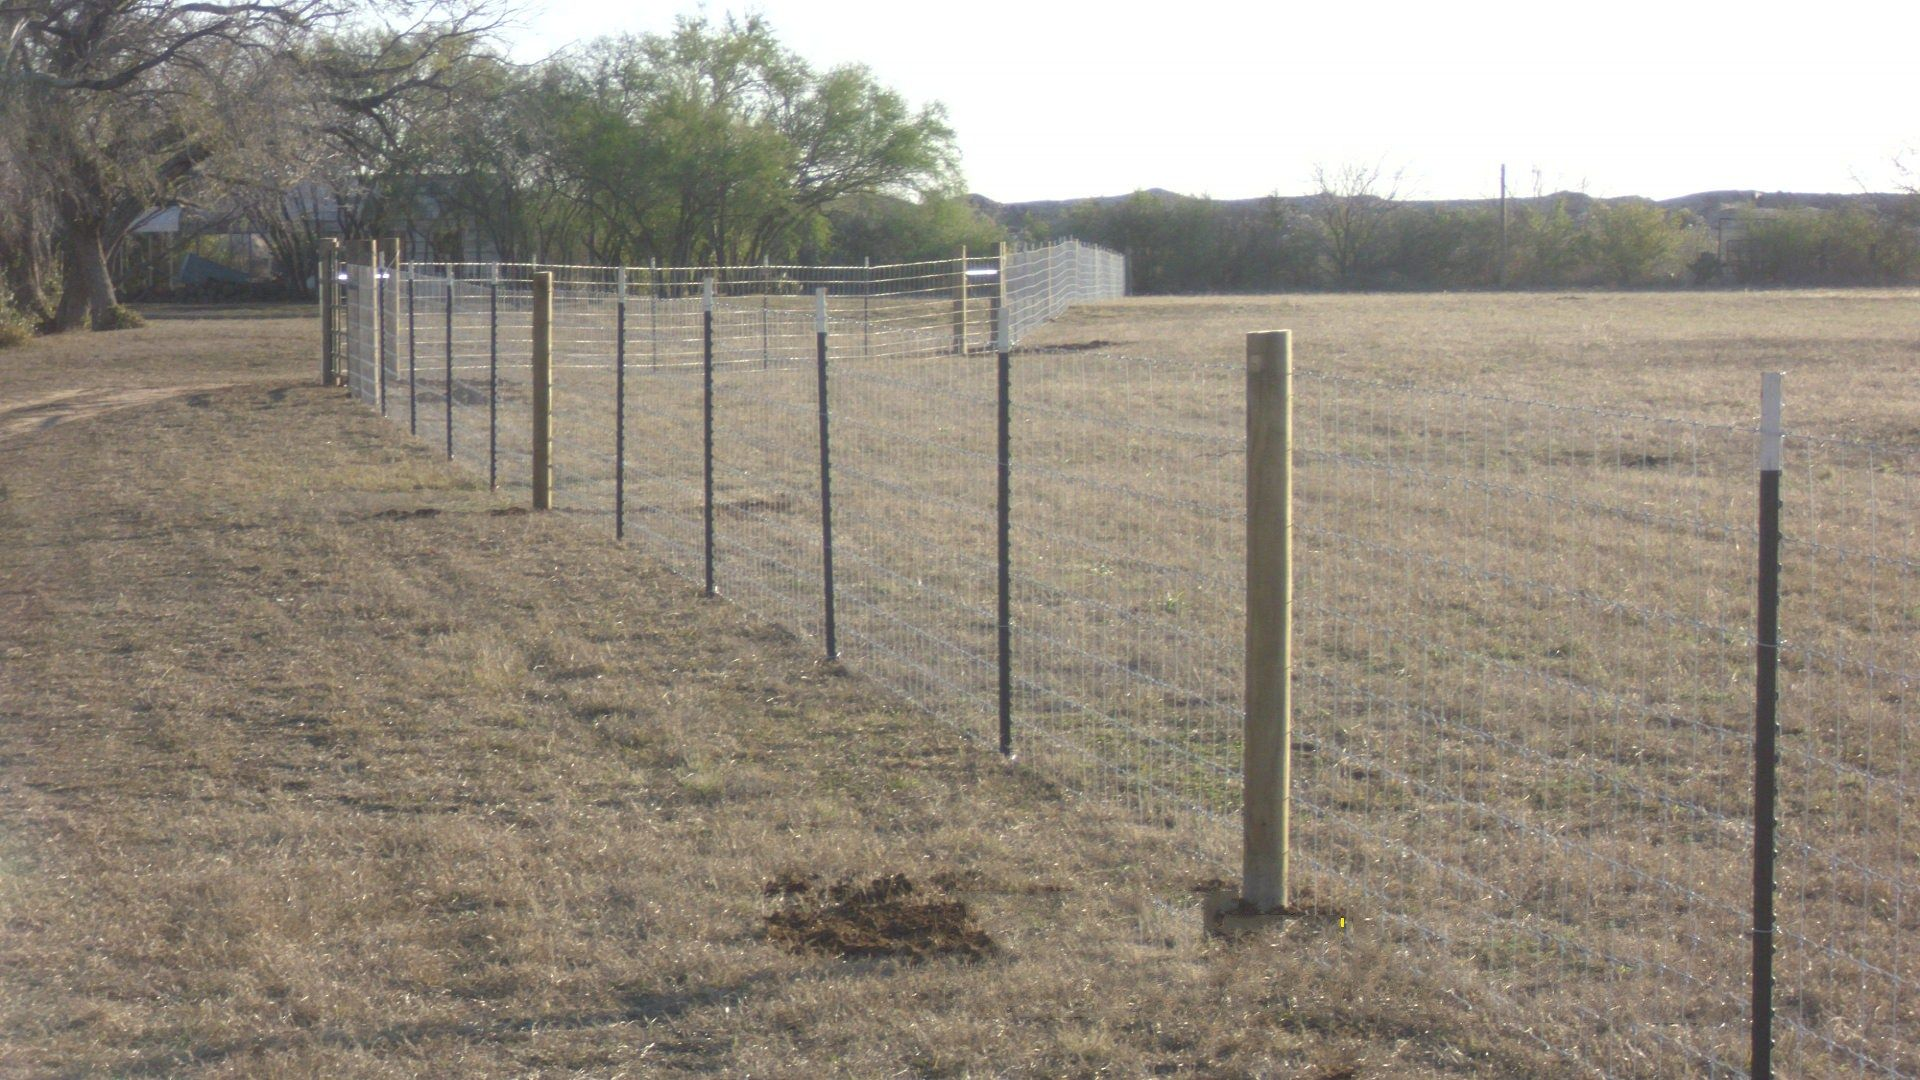 Field Fencing Horse Pasture No Barb Wire Bexar County Also Close Up ...